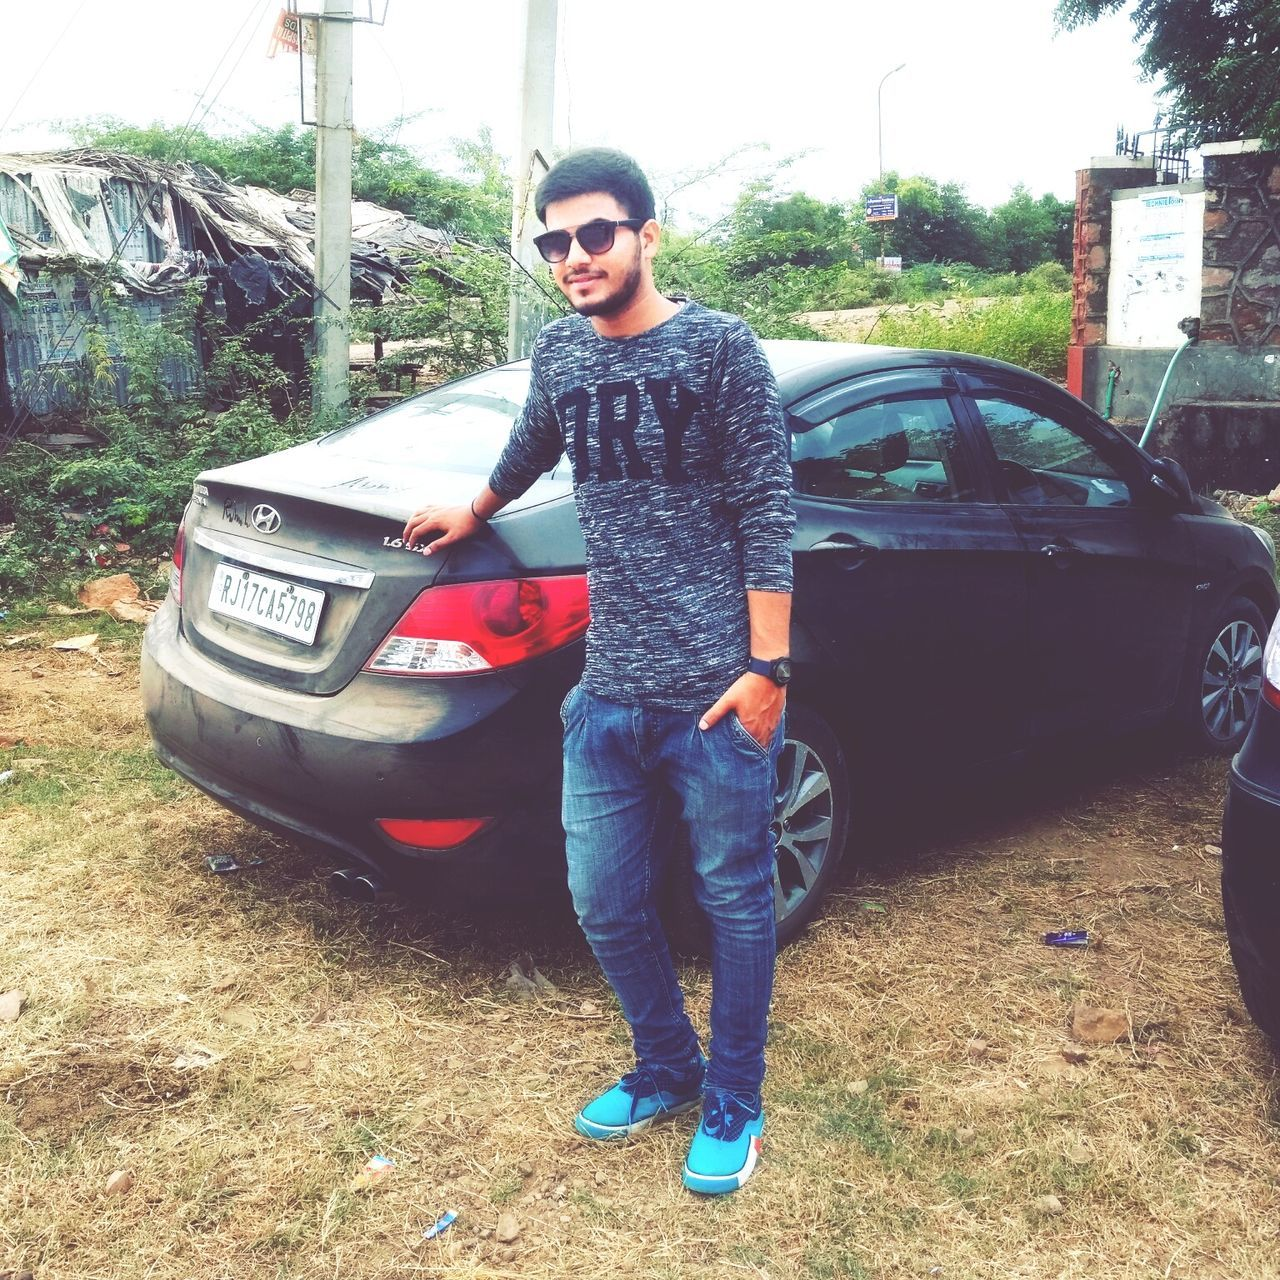 sunglasses, car, young adult, real people, one person, full length, casual clothing, transportation, standing, young men, day, outdoors, lifestyles, tree, young women, people